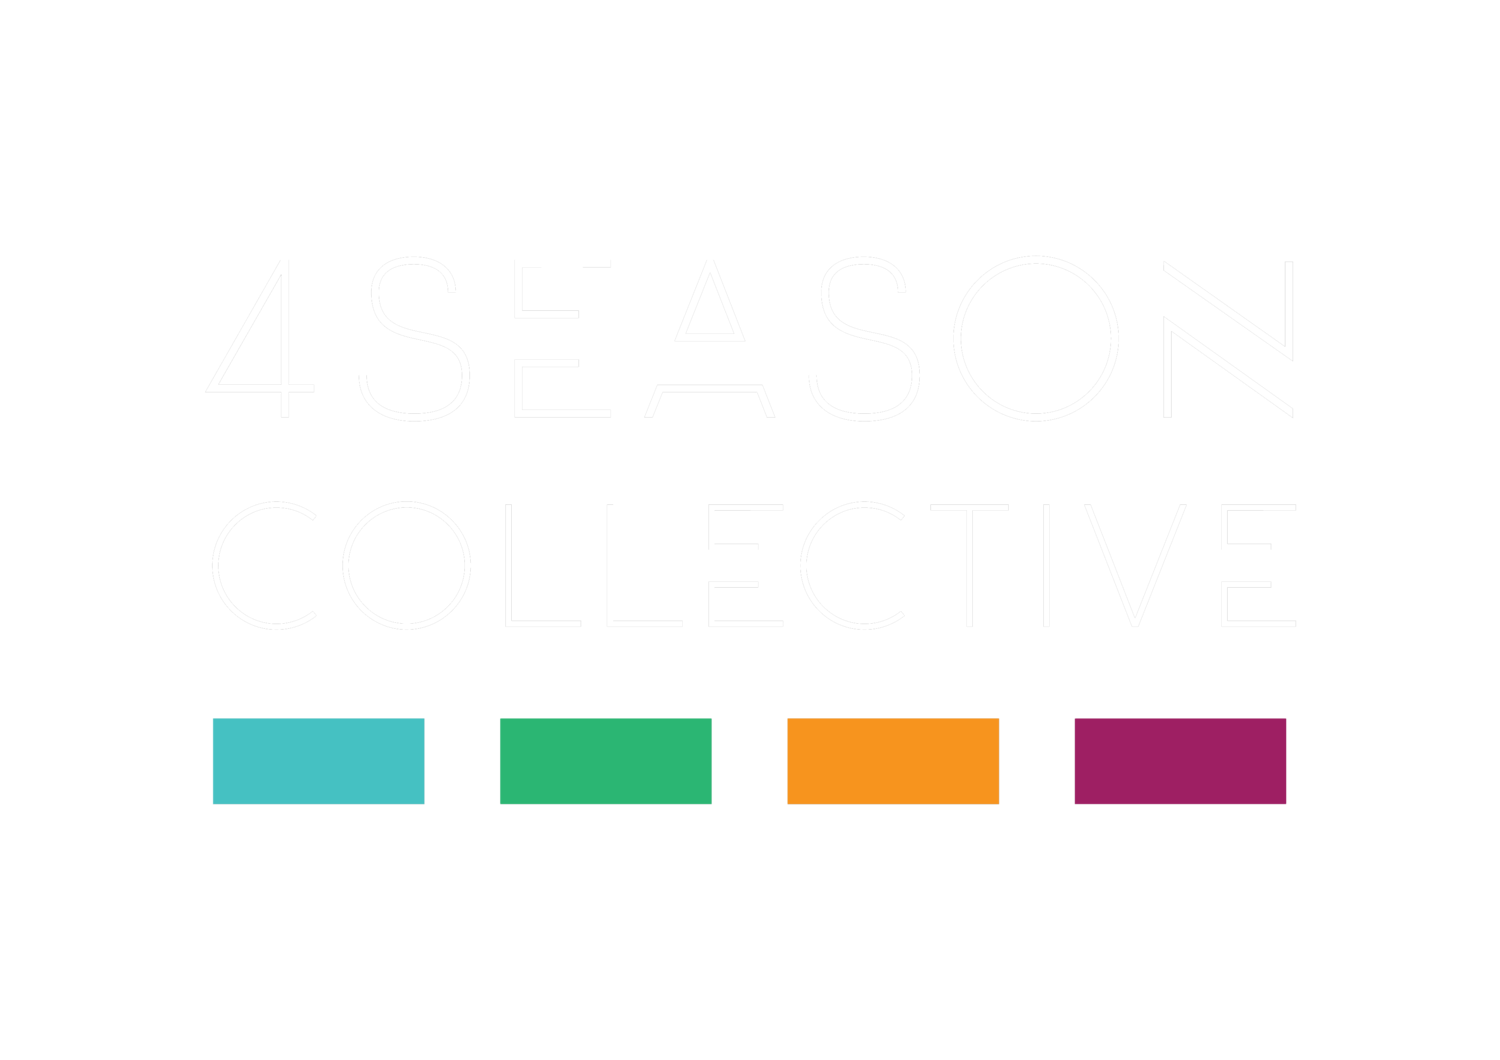 4Season Collective